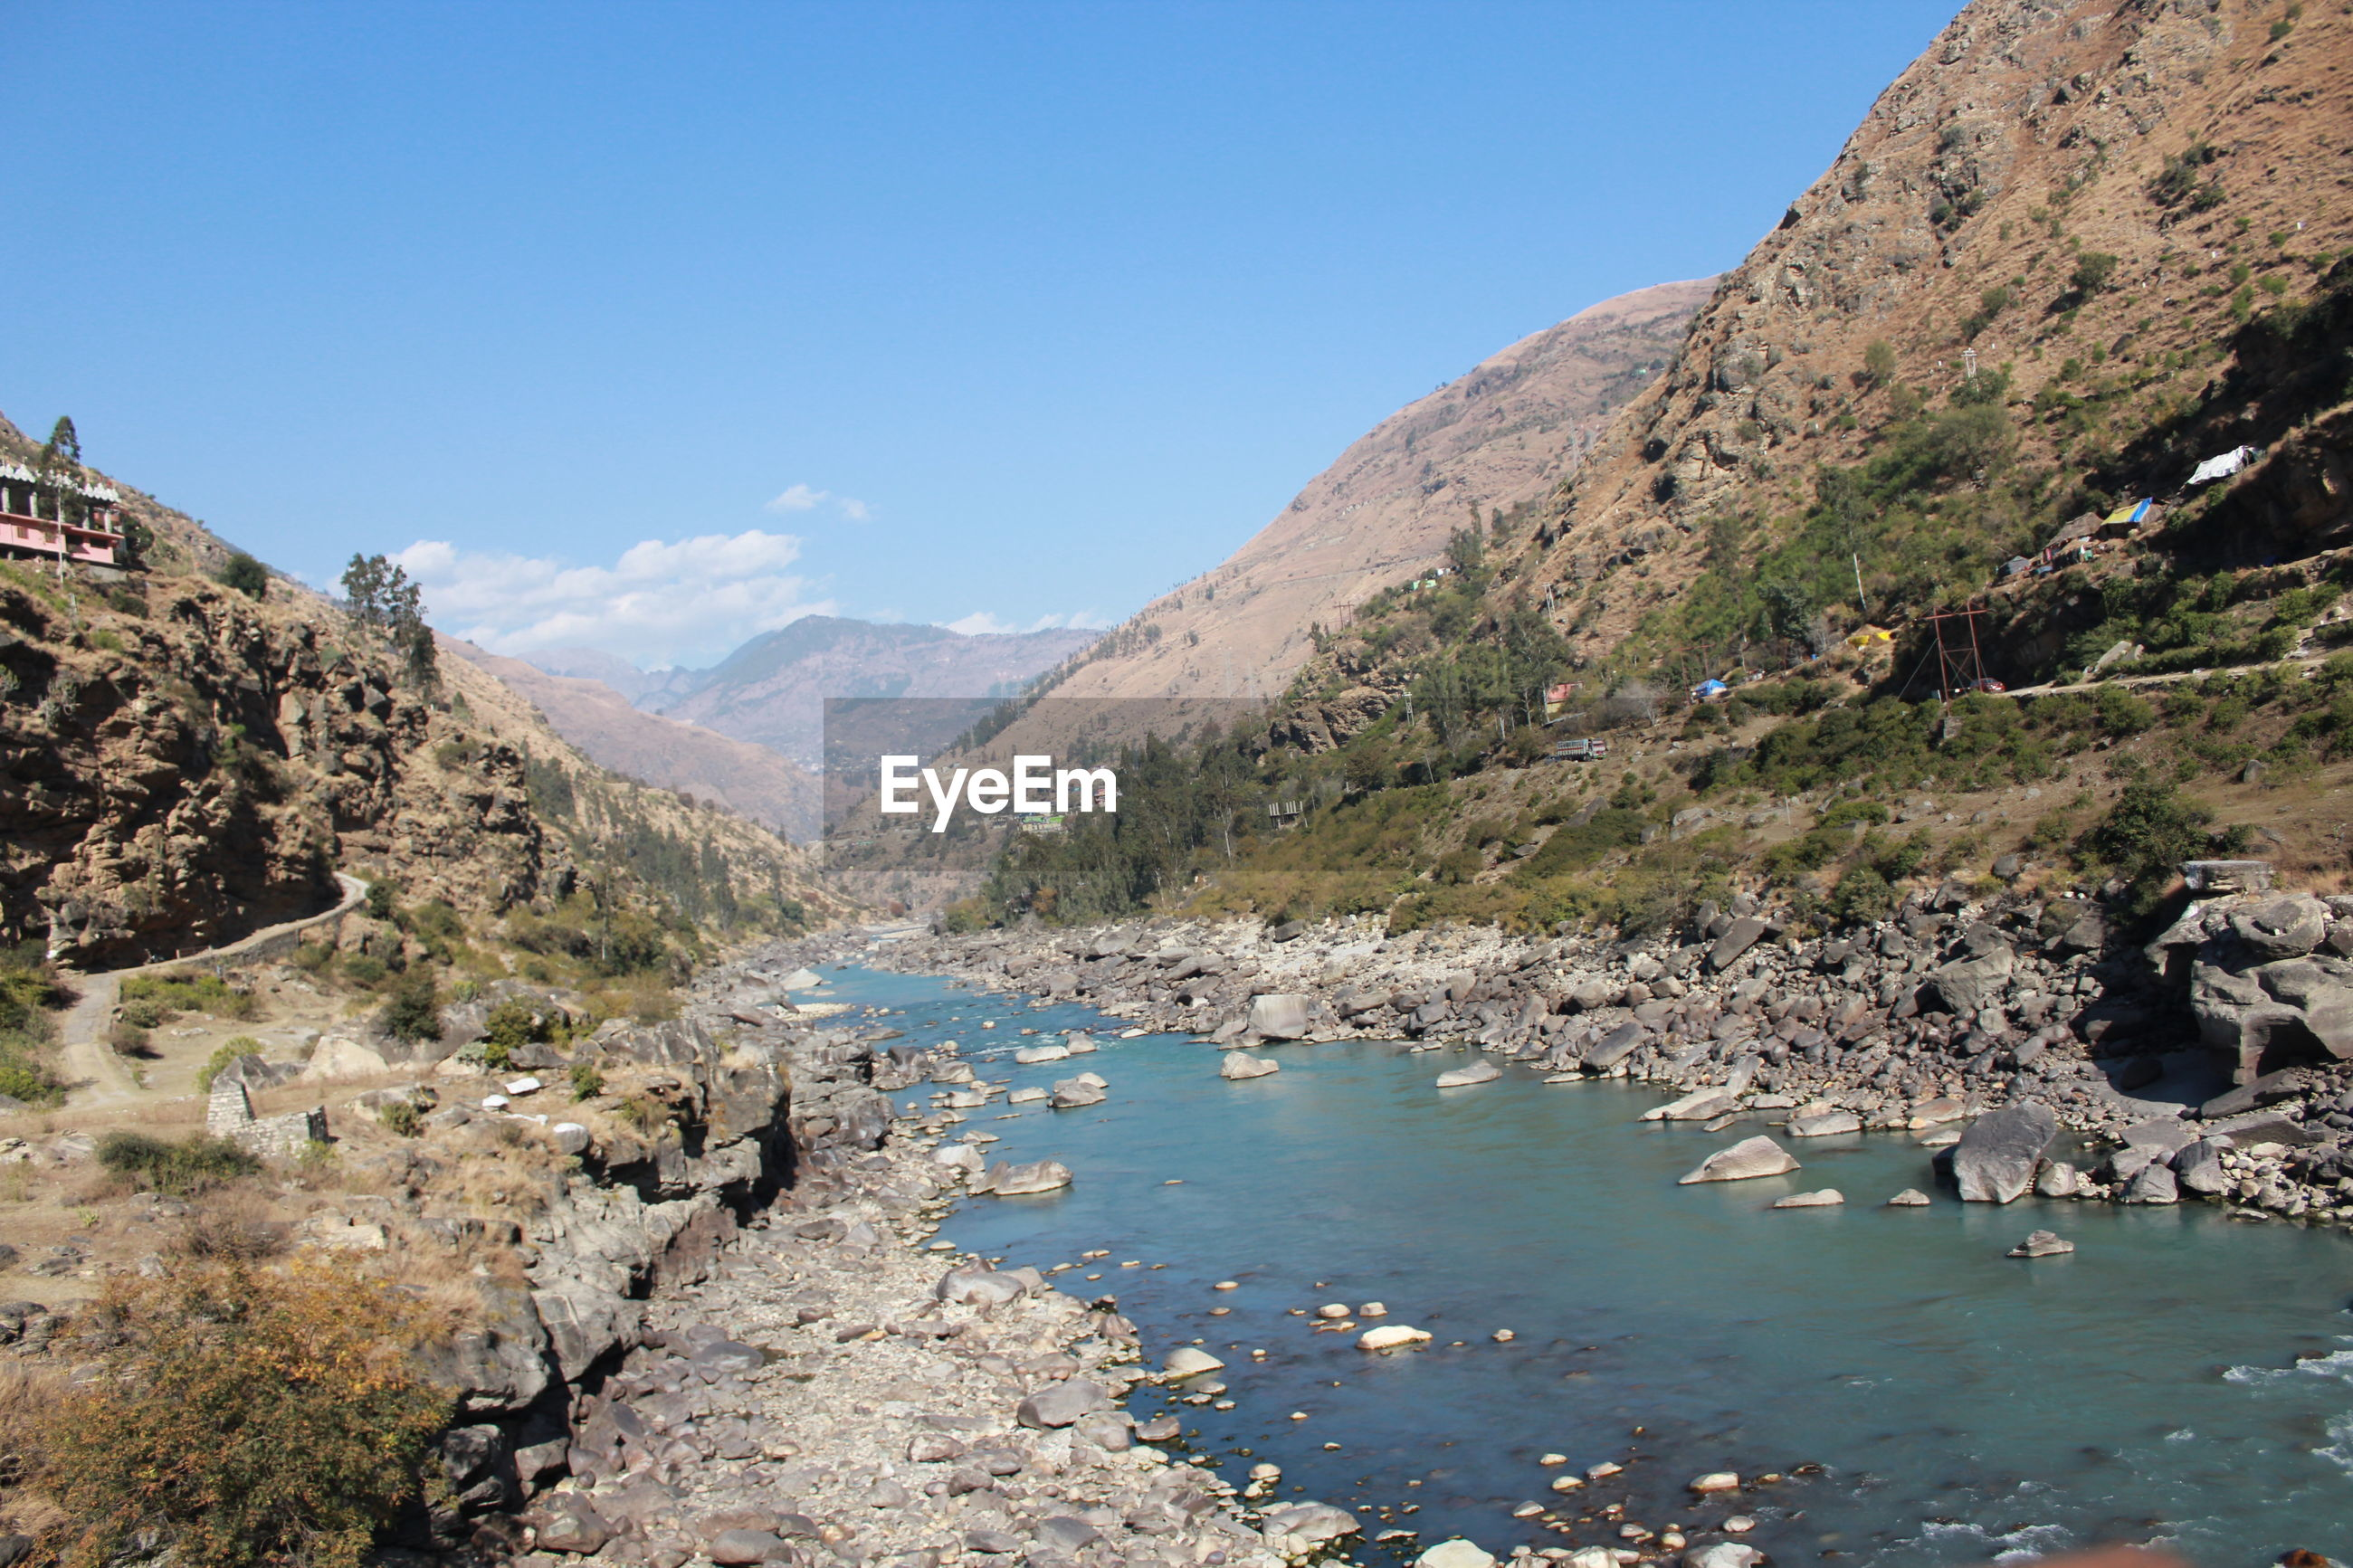 SCENIC VIEW OF RIVER AMIDST ROCKY MOUNTAINS AGAINST SKY